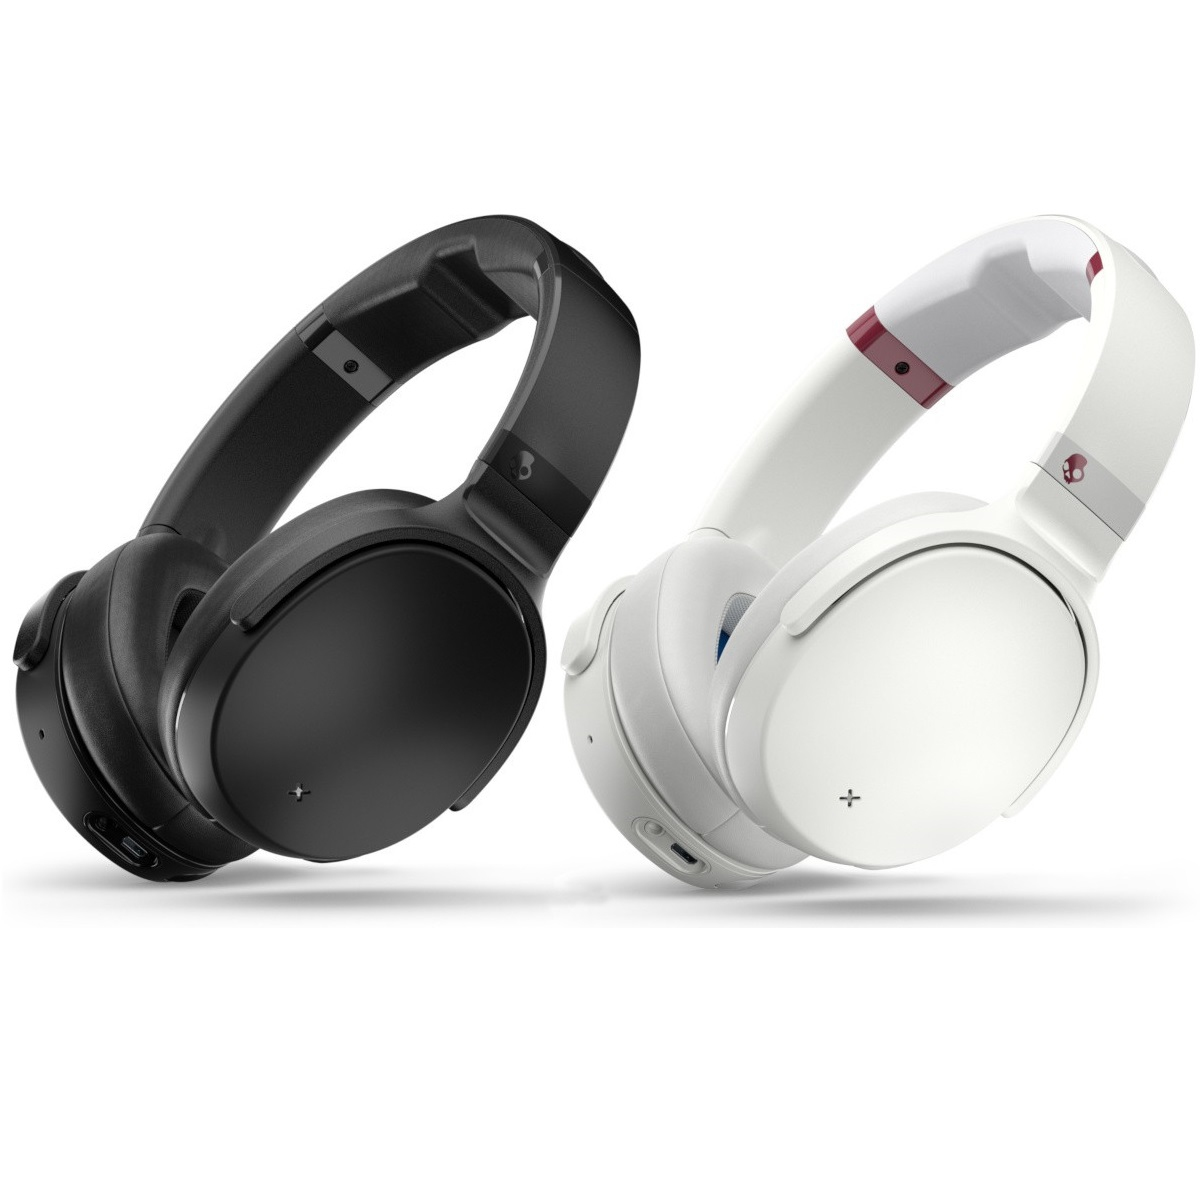 Skullcandy Venue Active Noise Canceling Wireless Headphone With Monitor Mode